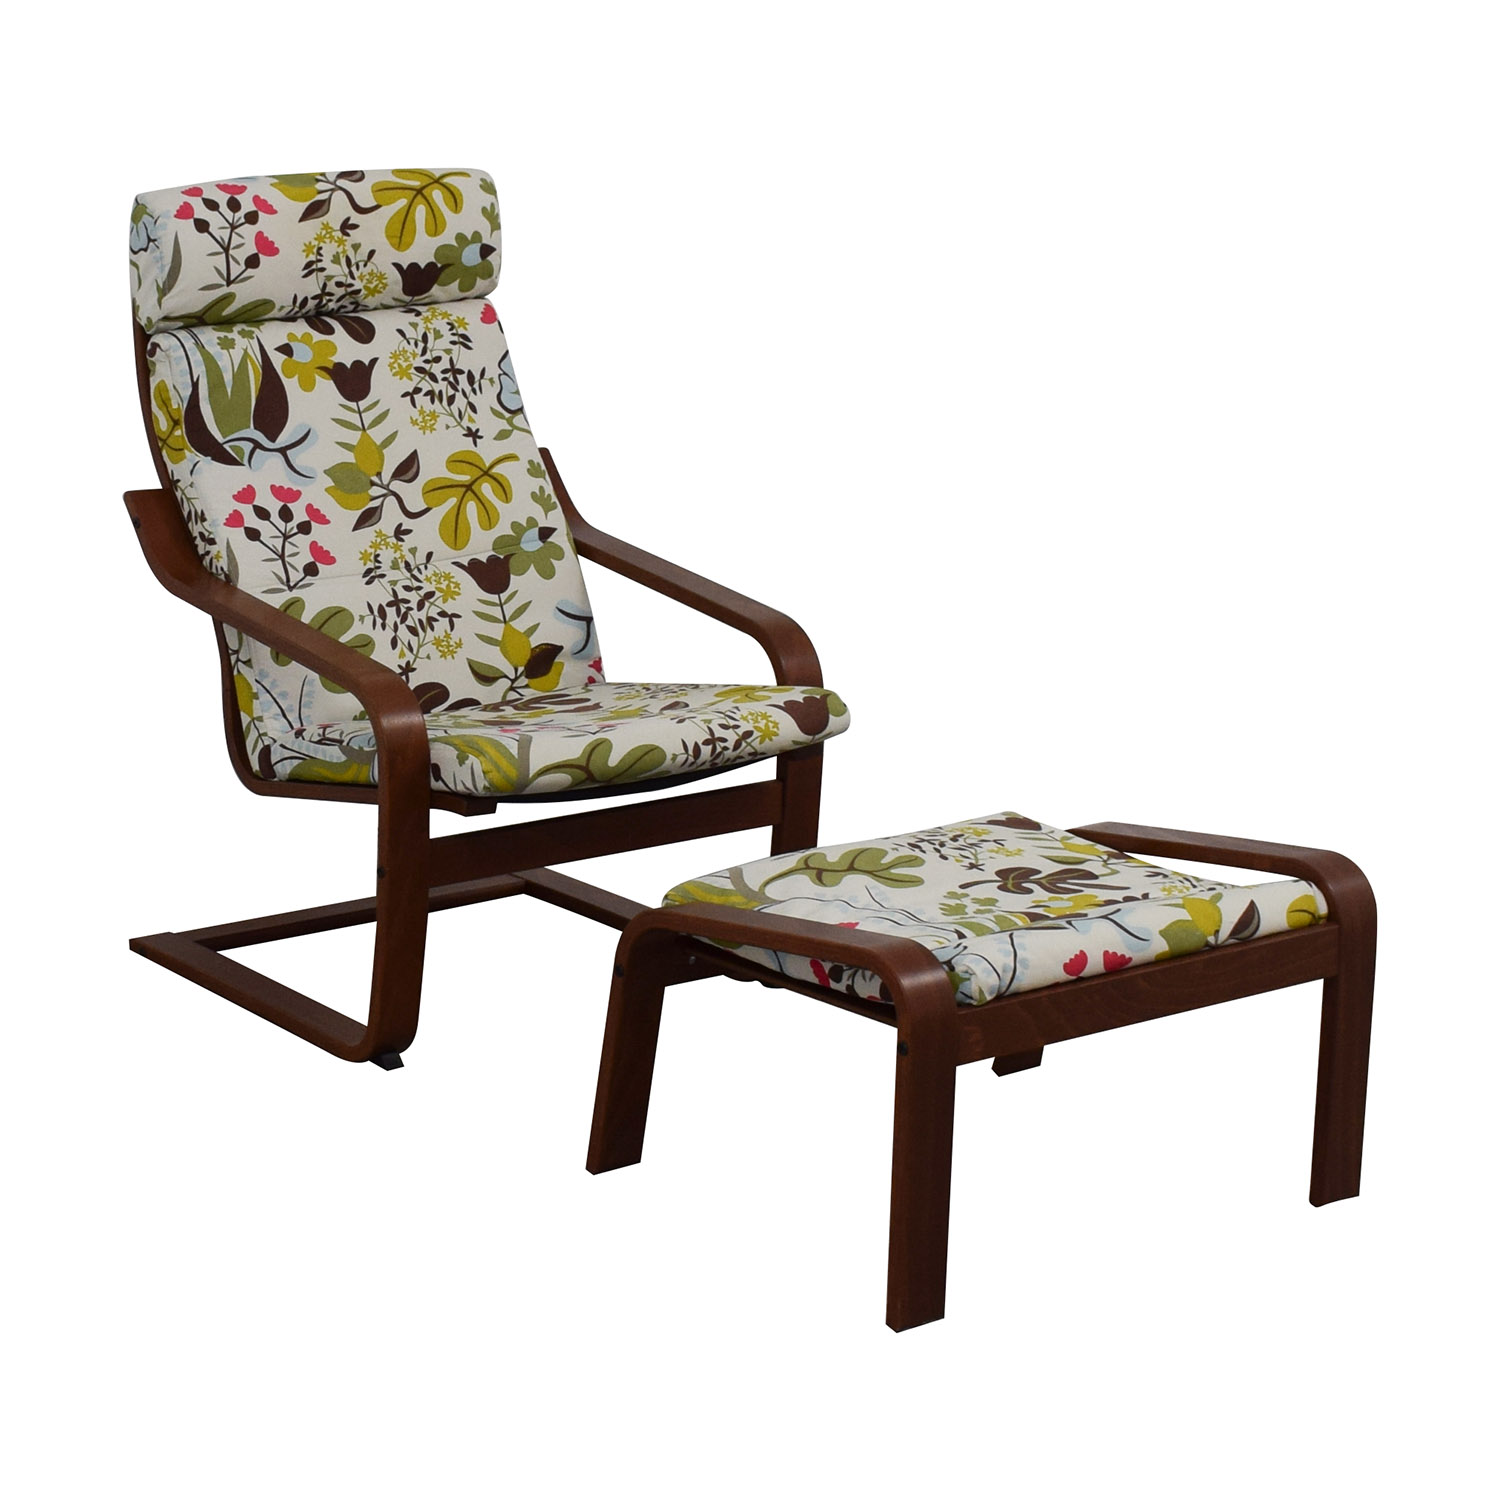 90% OFF - IKEA IKEA Poang Armchair and Ottoman / Chairs